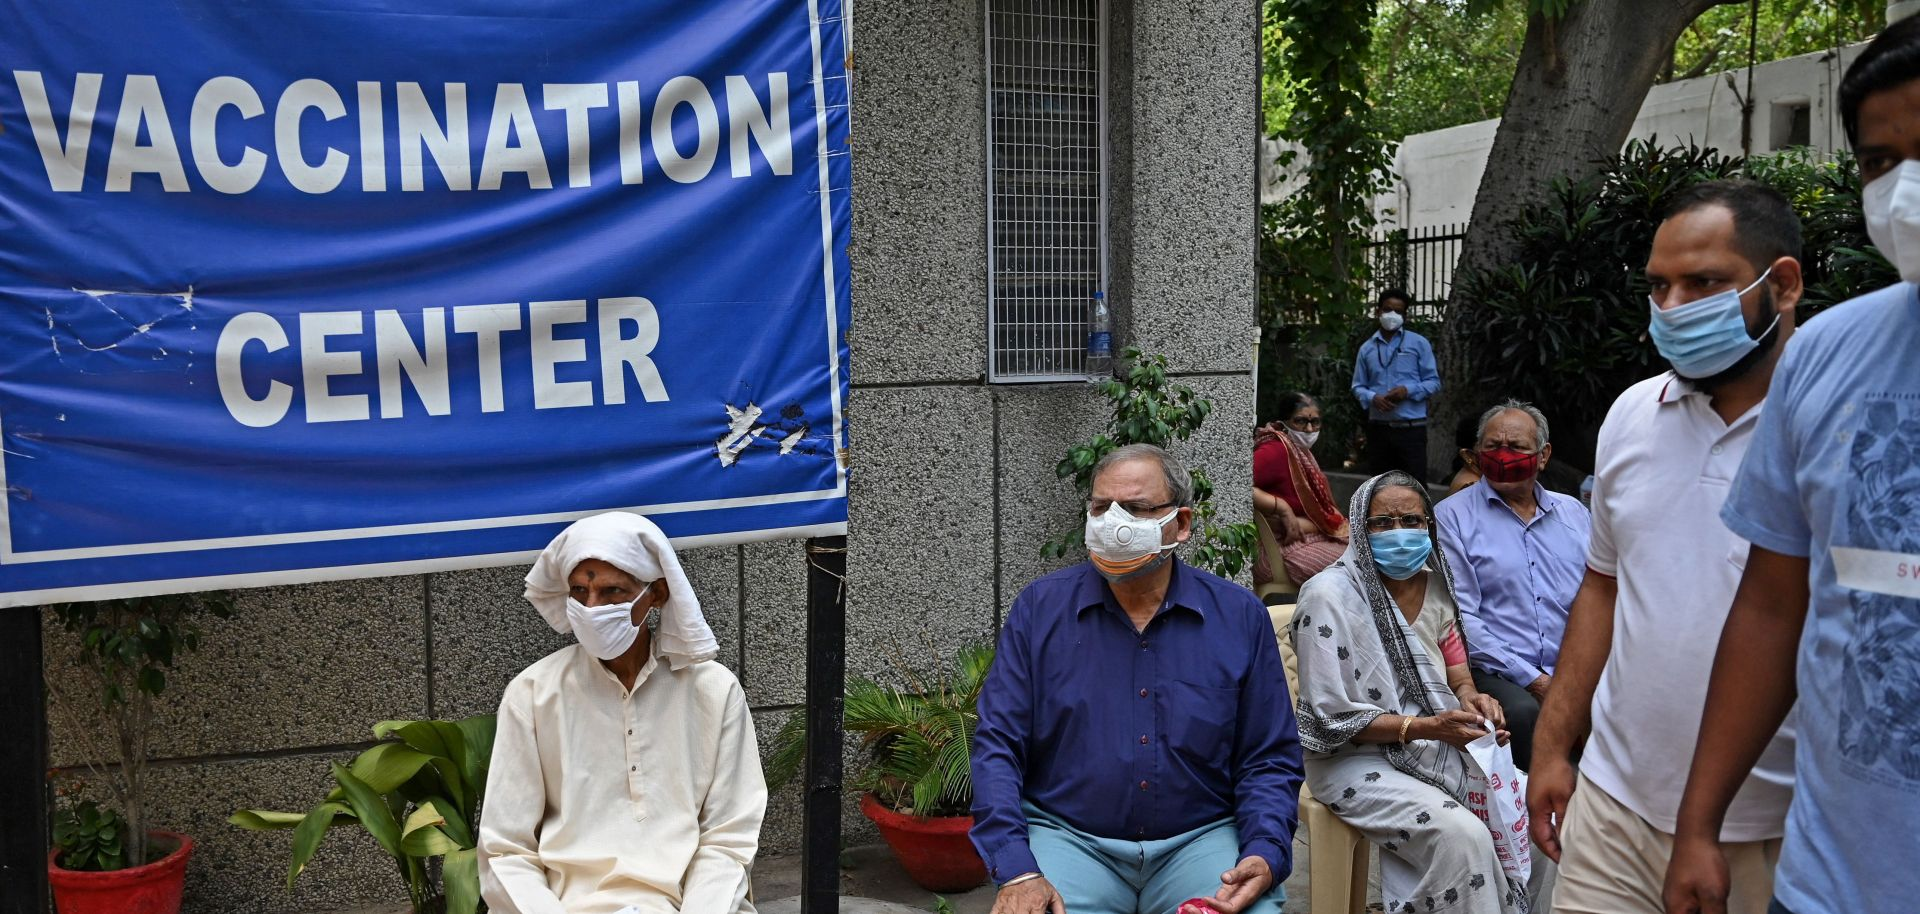 People wait to receive COVID-19 vaccines at a health center in New Delhi on May 13, 2021.